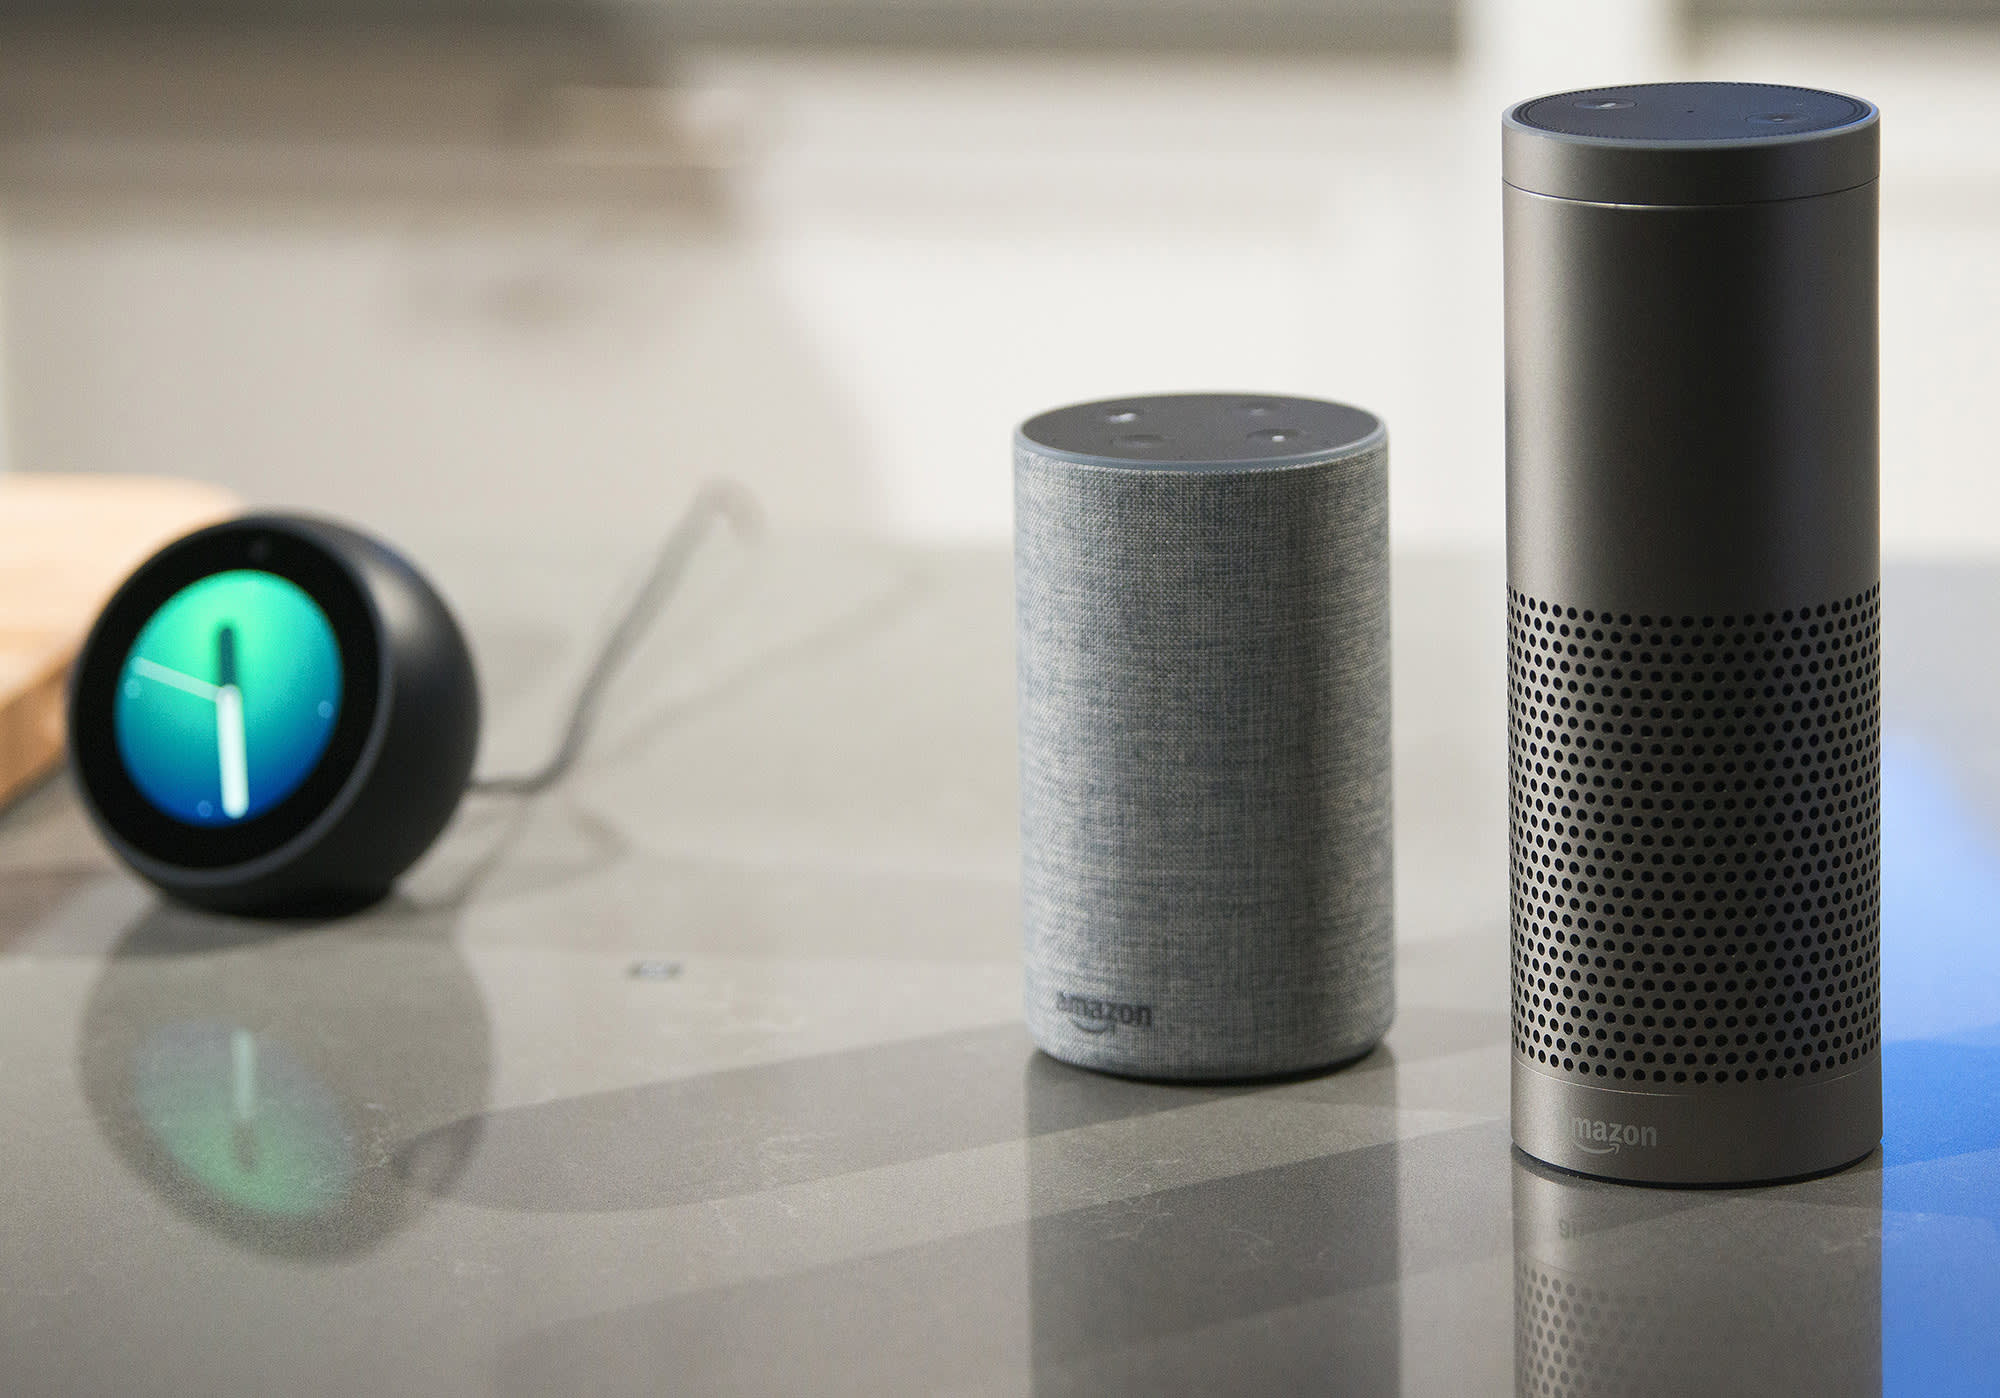 How to use the Amazon Echo, on sale for Prime Day